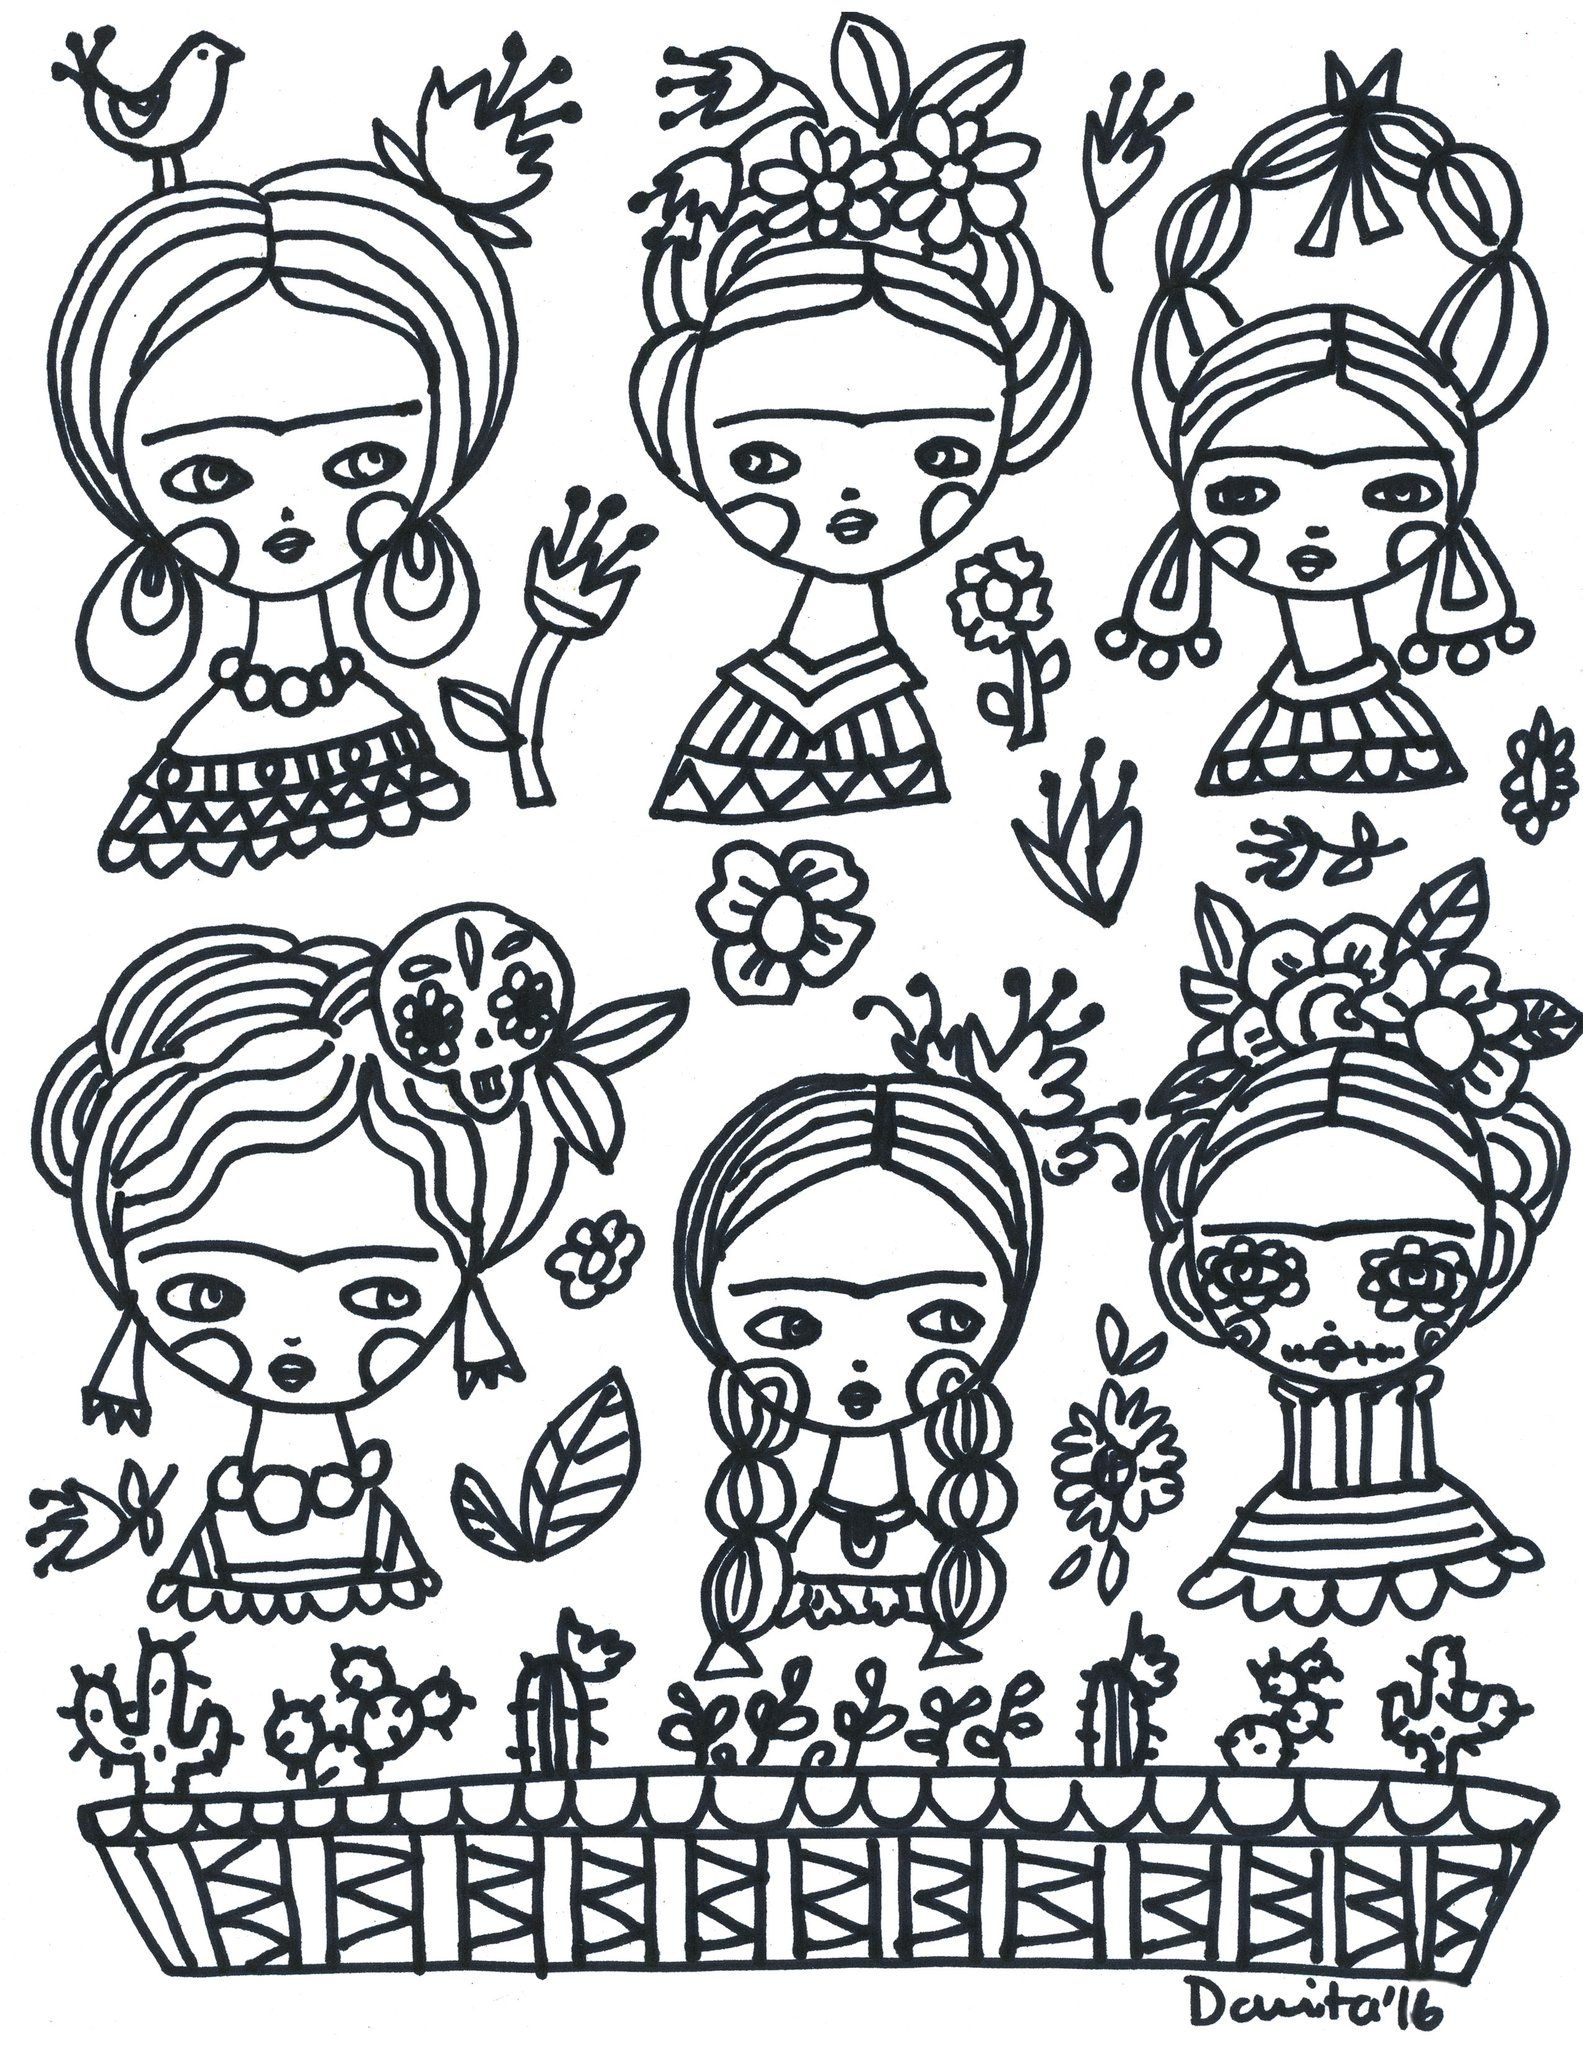 Coloring with Frida! | ♥ Frida Kahlo Love ♥ | Pinterest | Coloring ...